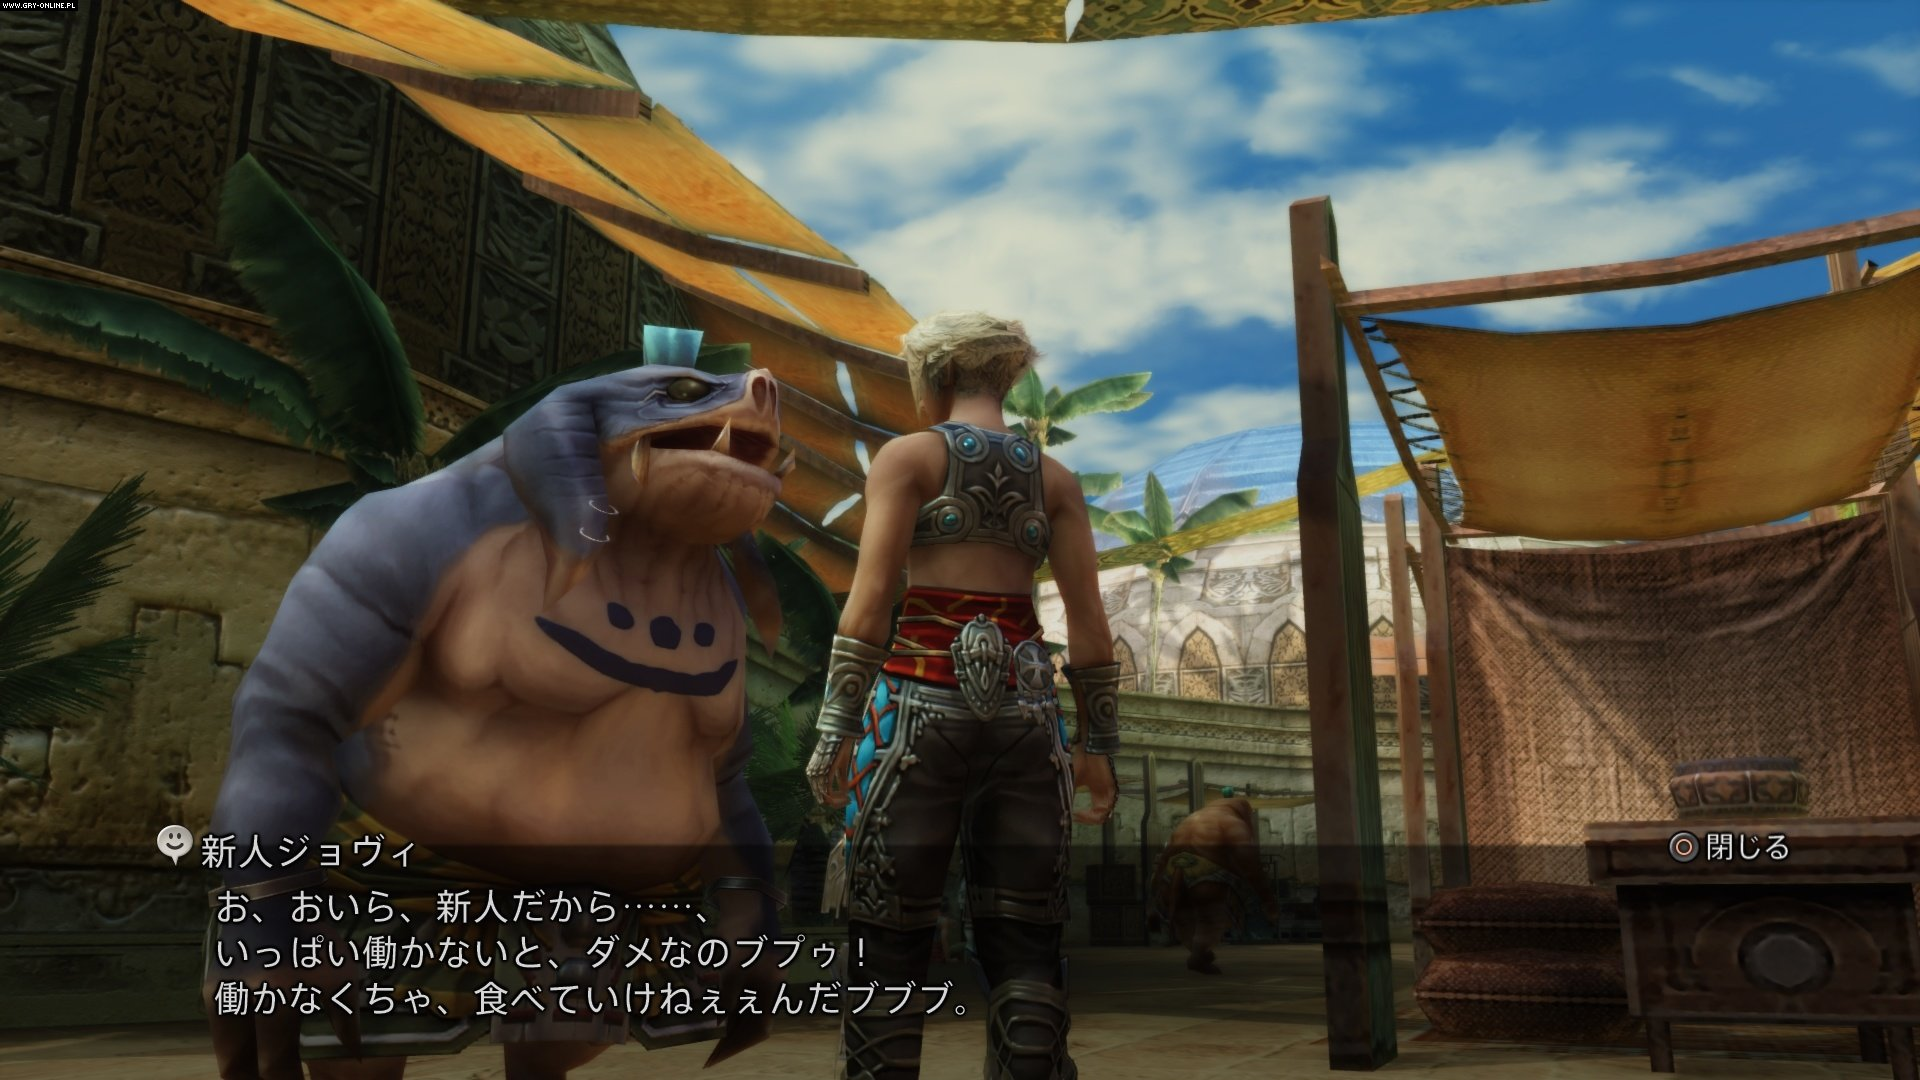 Final Fantasy XII: The Zodiac Age PS4 Gry Screen 33/71, Square-Enix / Eidos